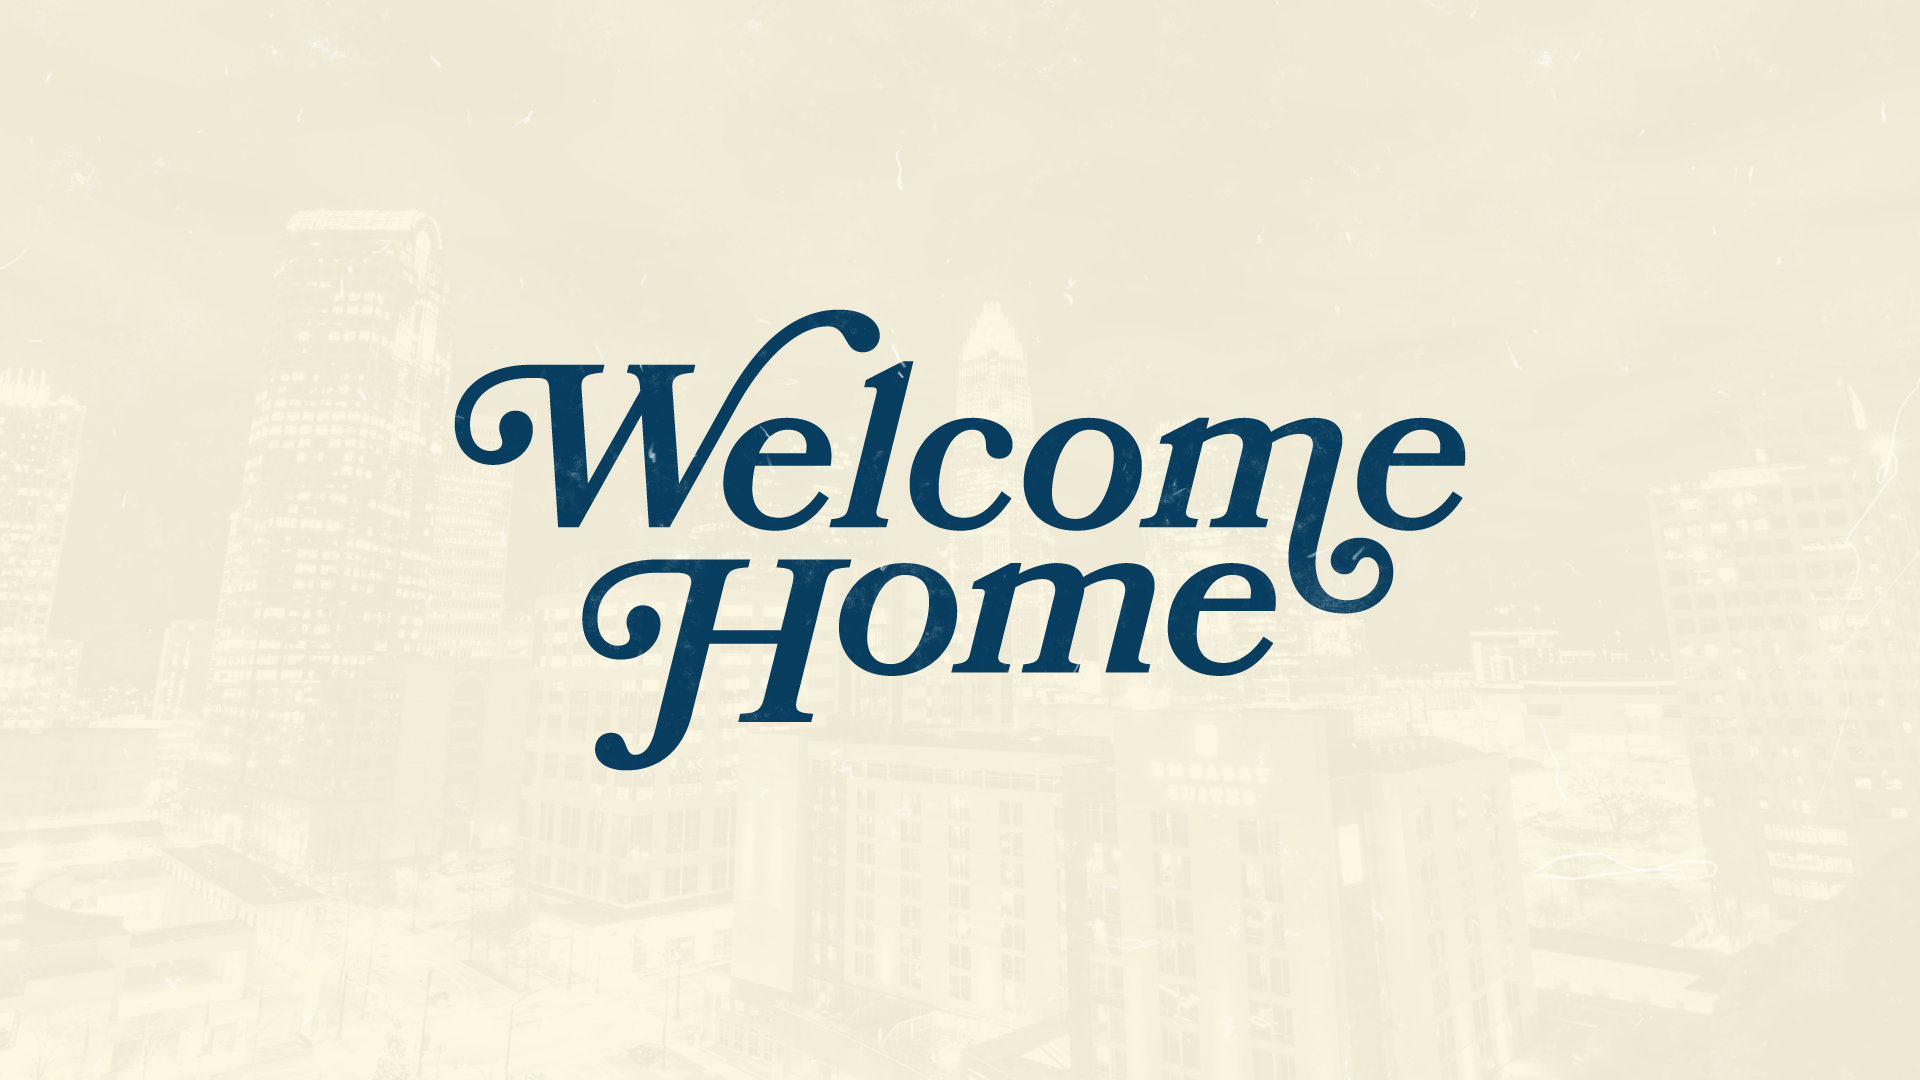 Welcome Home, New City!